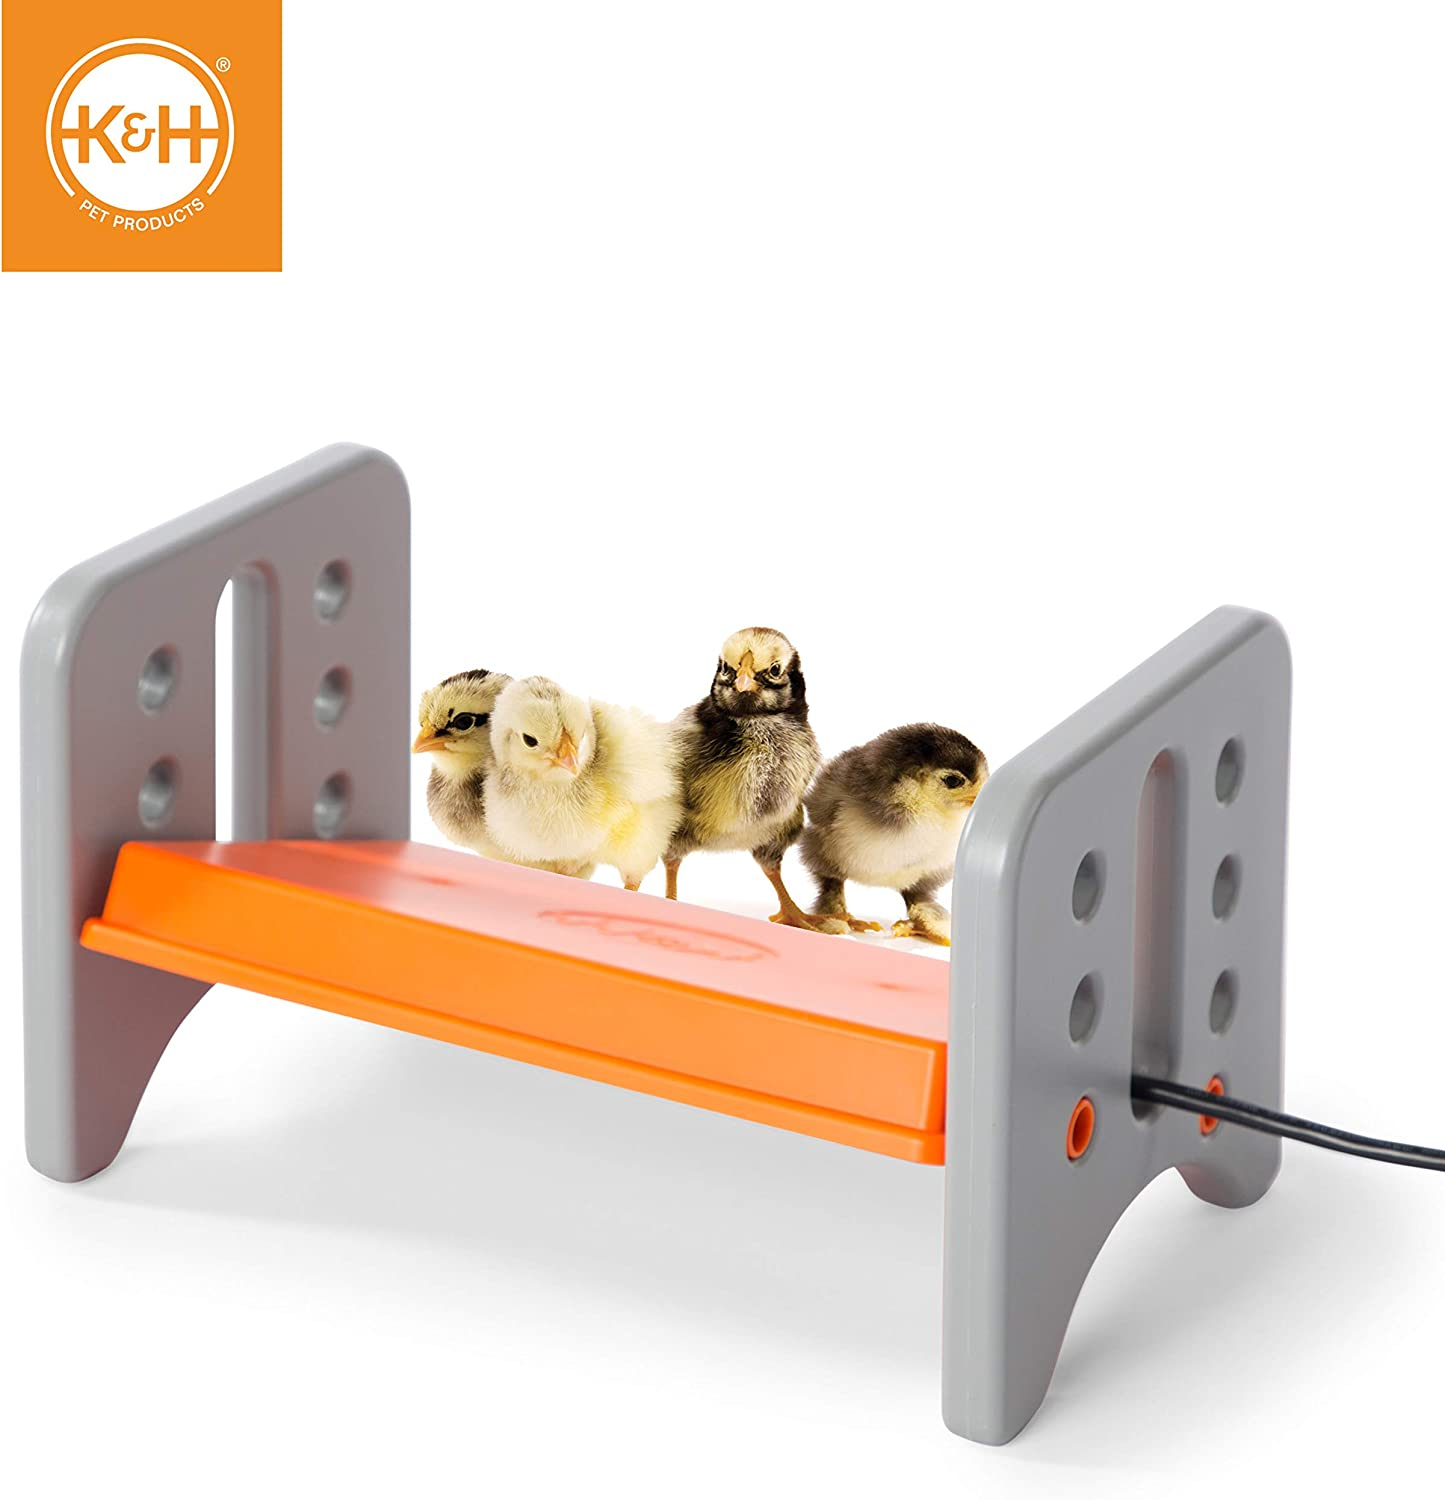 Amazon Com K H Pet Products 100213615 Thermo Poultry Brooder For Newly Hatched Chicks And Ducklings 8 X 13 5 X 8 Gray Orange Garden Outdoor